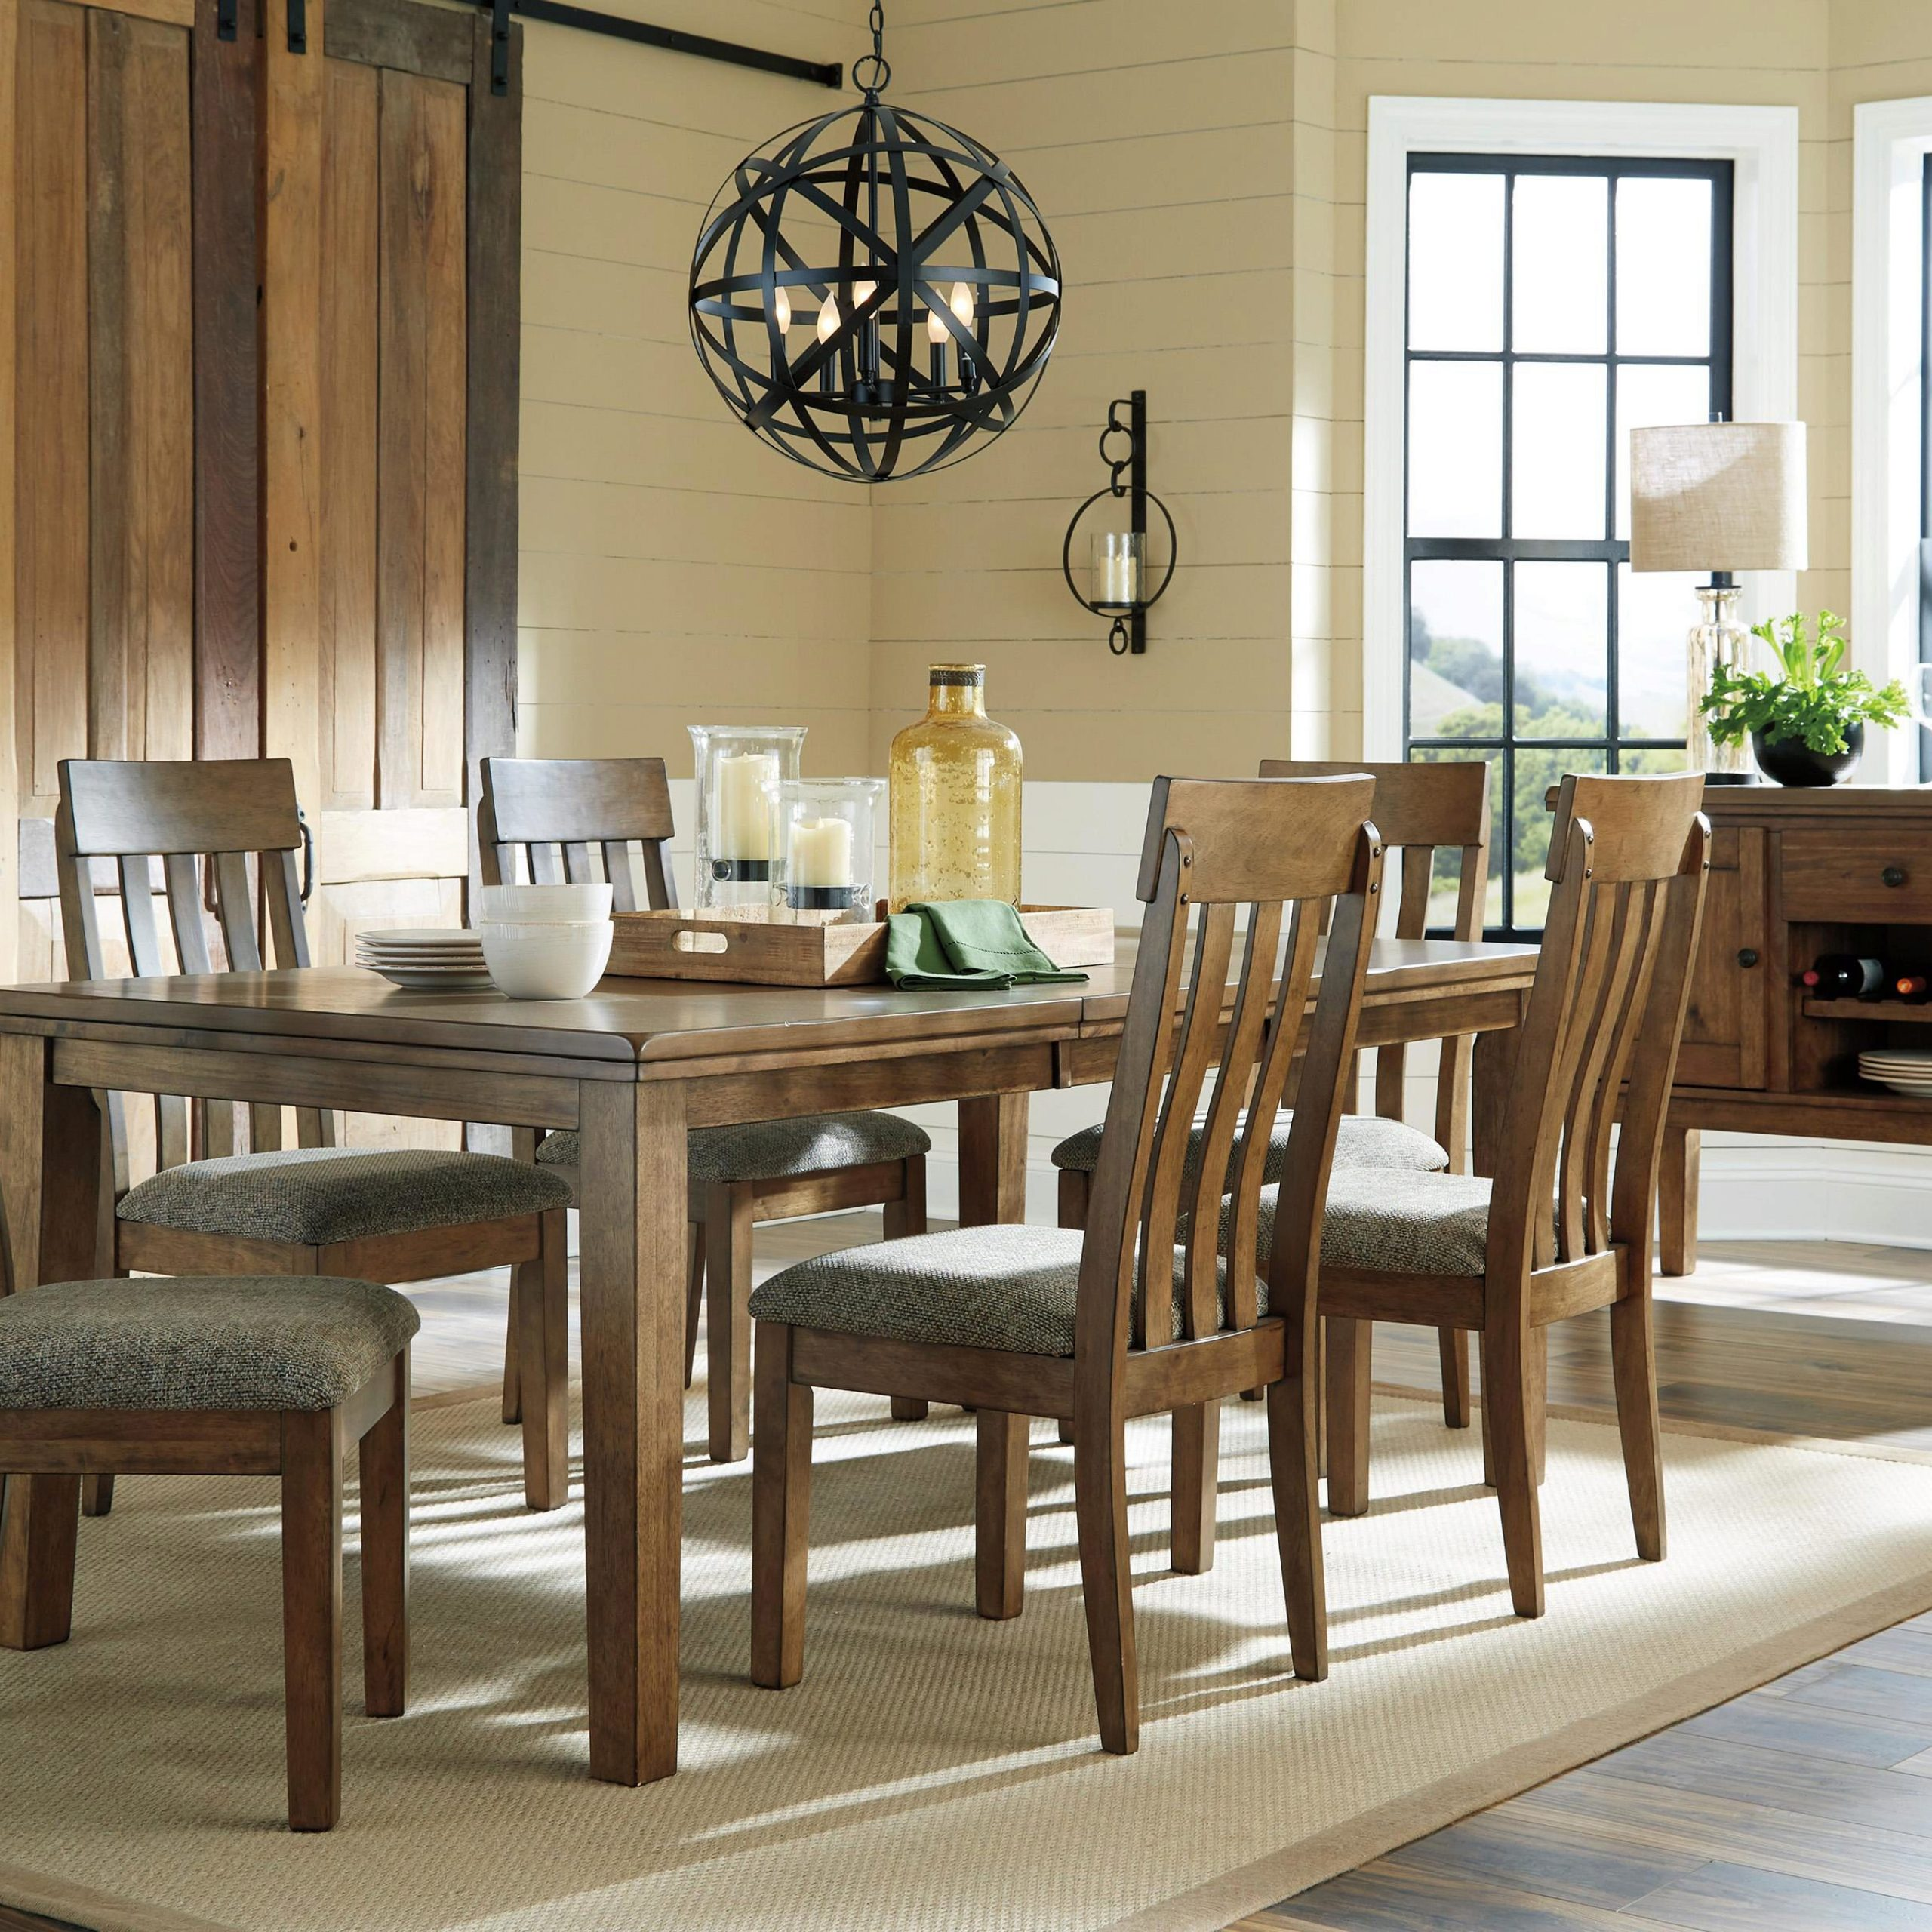 Ashley Flaybern D595 Dining Room Set 8Pcs In Brown (D595 Intended For 2018 Benji 35'' Dining Tables (View 15 of 15)